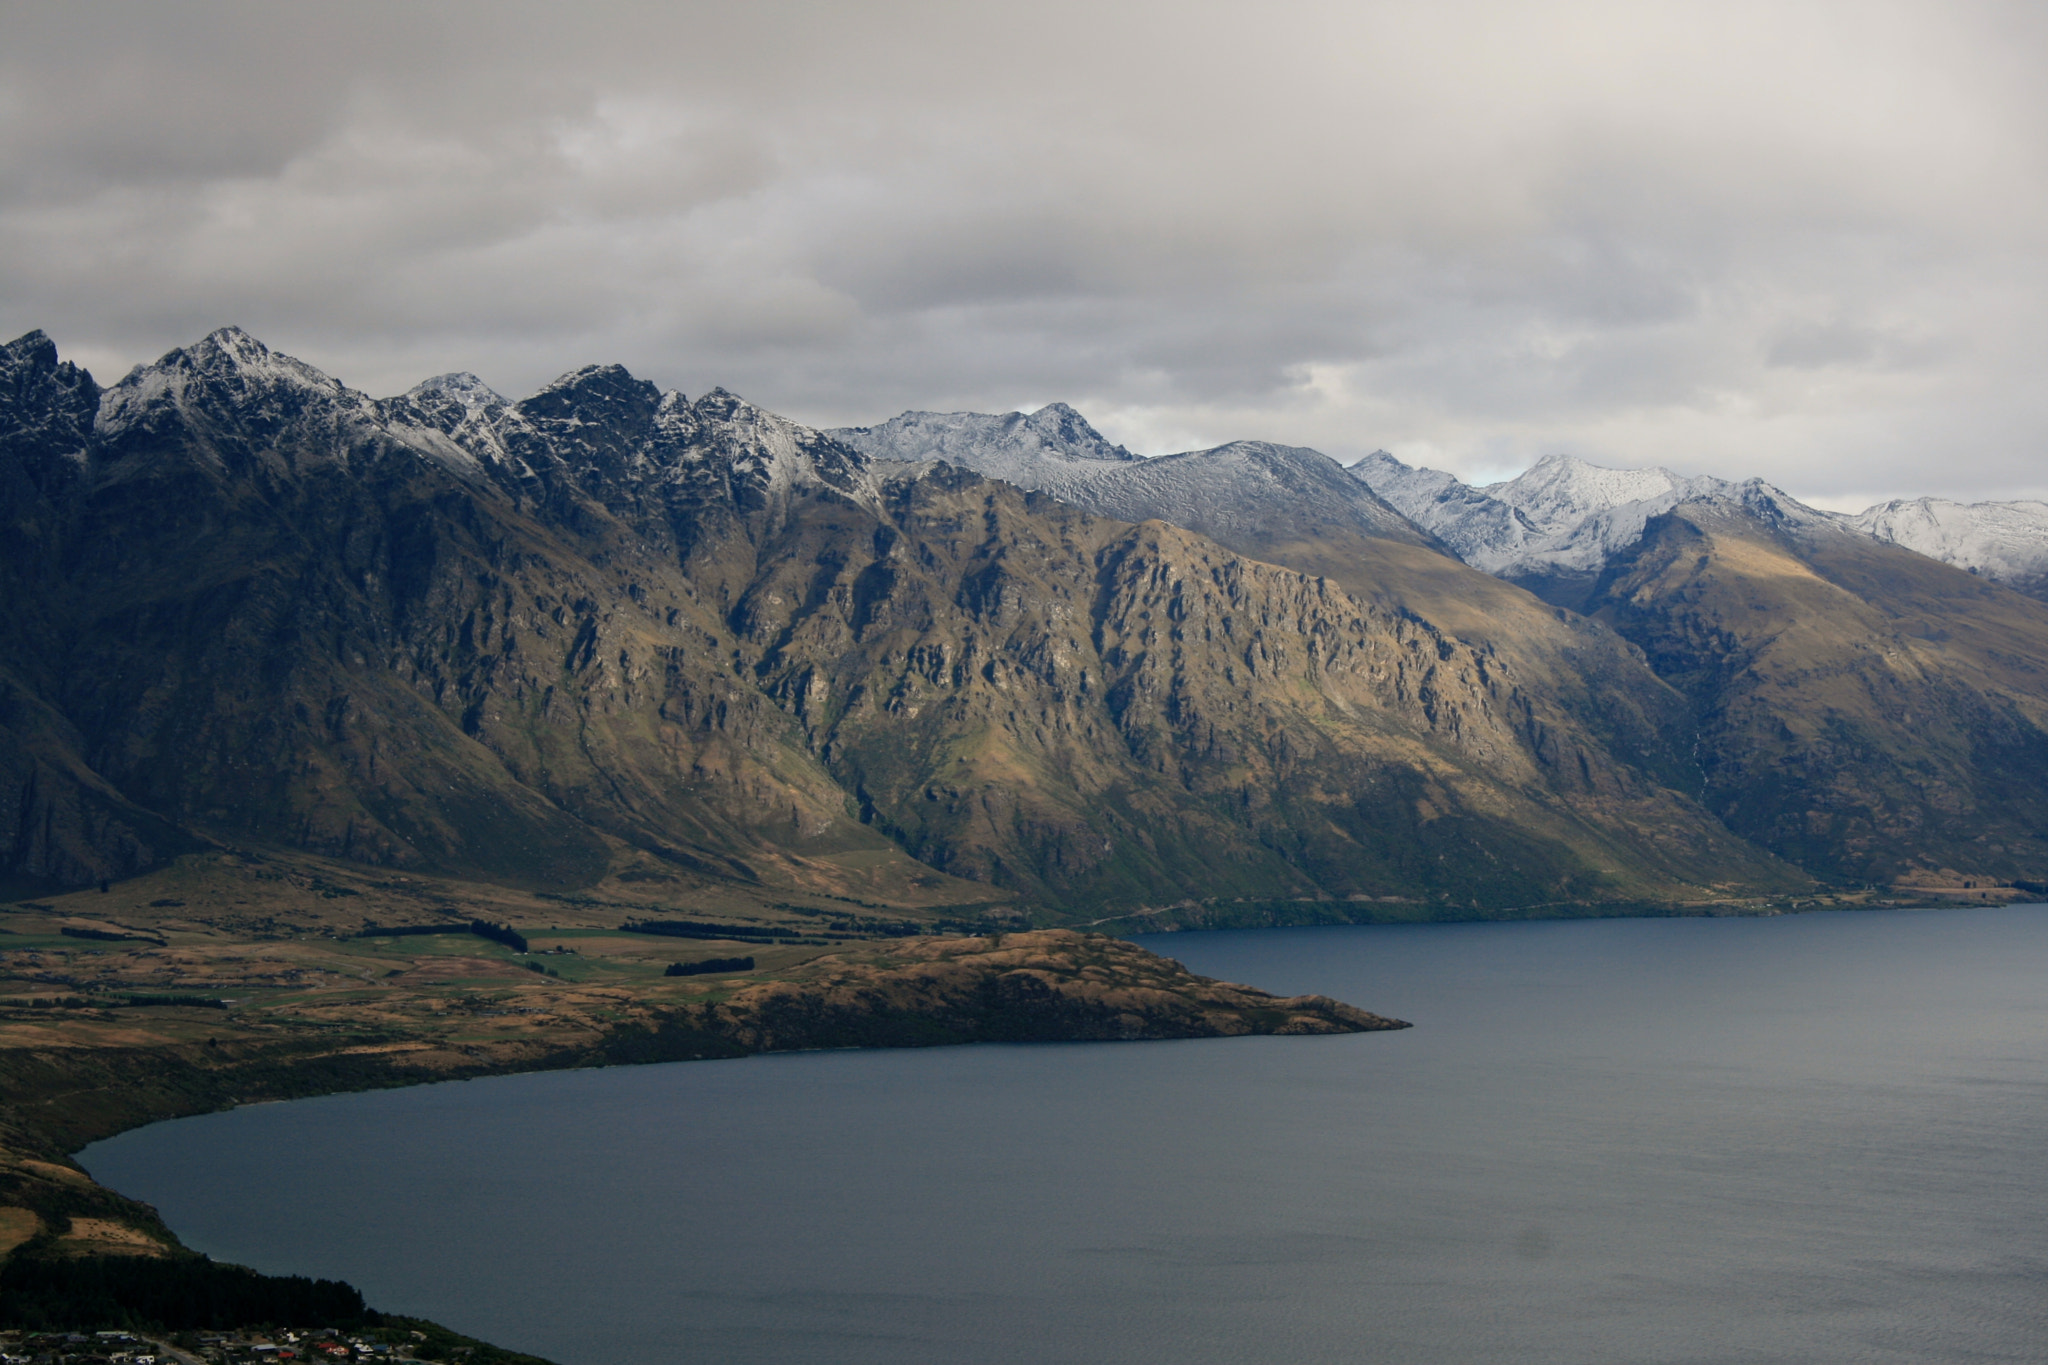 Photograph The Remarkables by Danny Bond on 500px